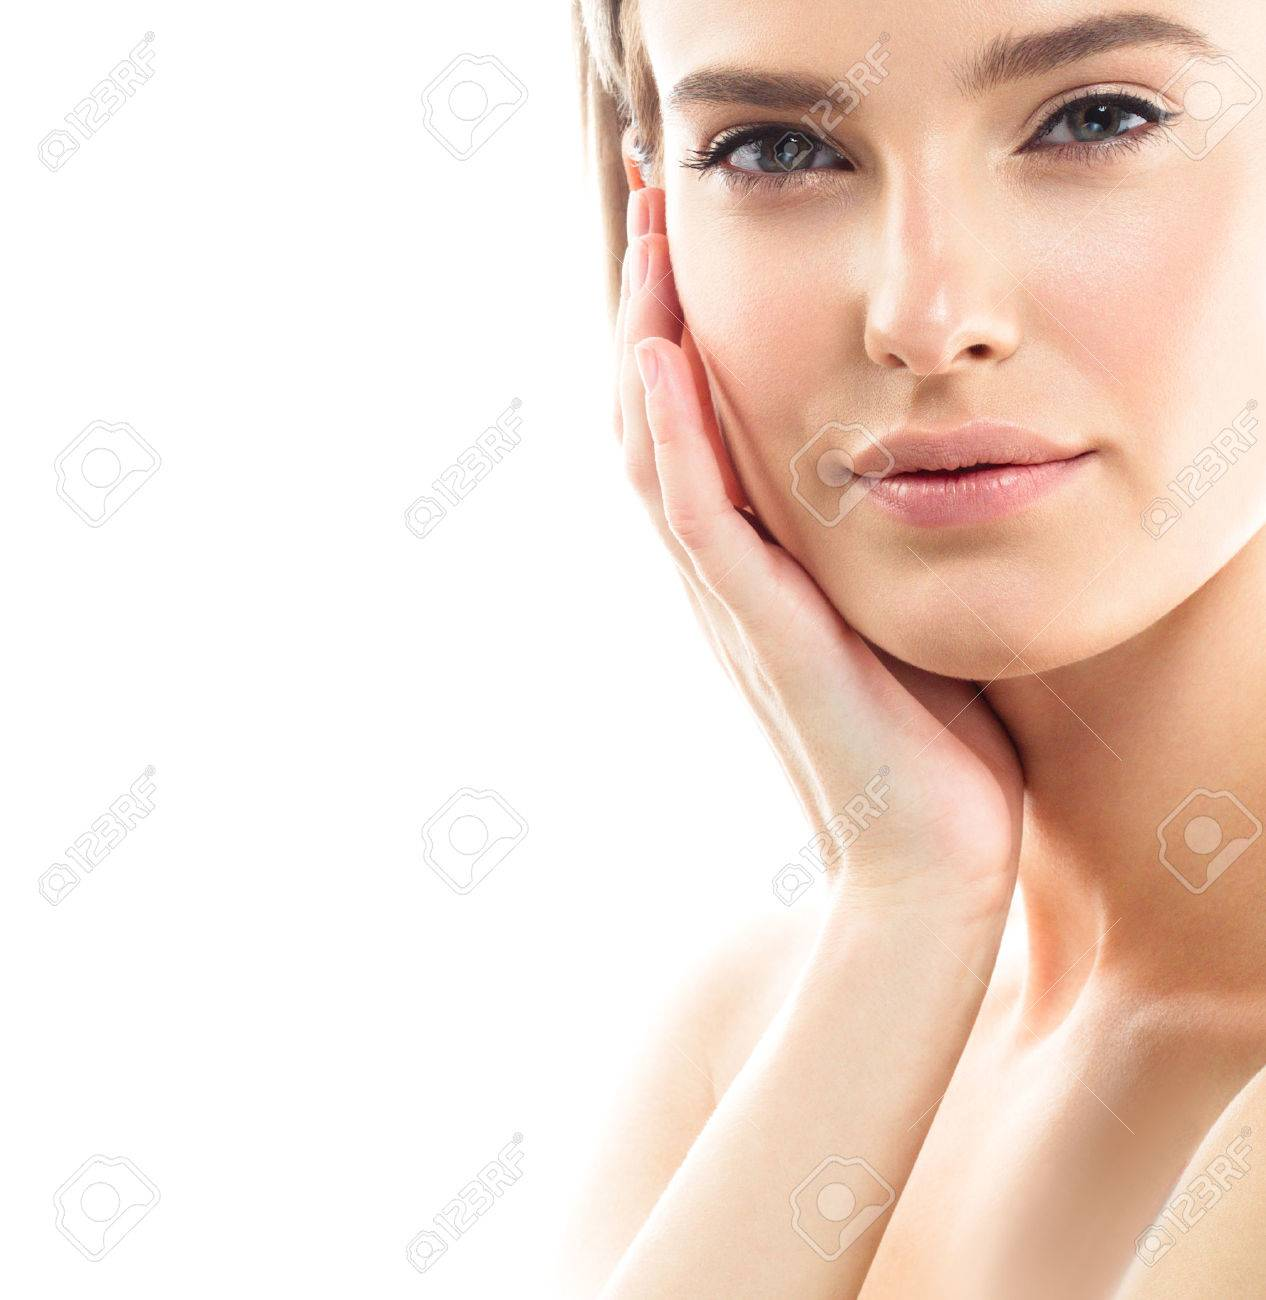 Beauty Woman face Portrait. Beautiful model Girl with Perfect Fresh Clean Skin color lips purple red. Blonde brunette short hair Youth and Skin Care Concept. Isolated on a white background - 63510008